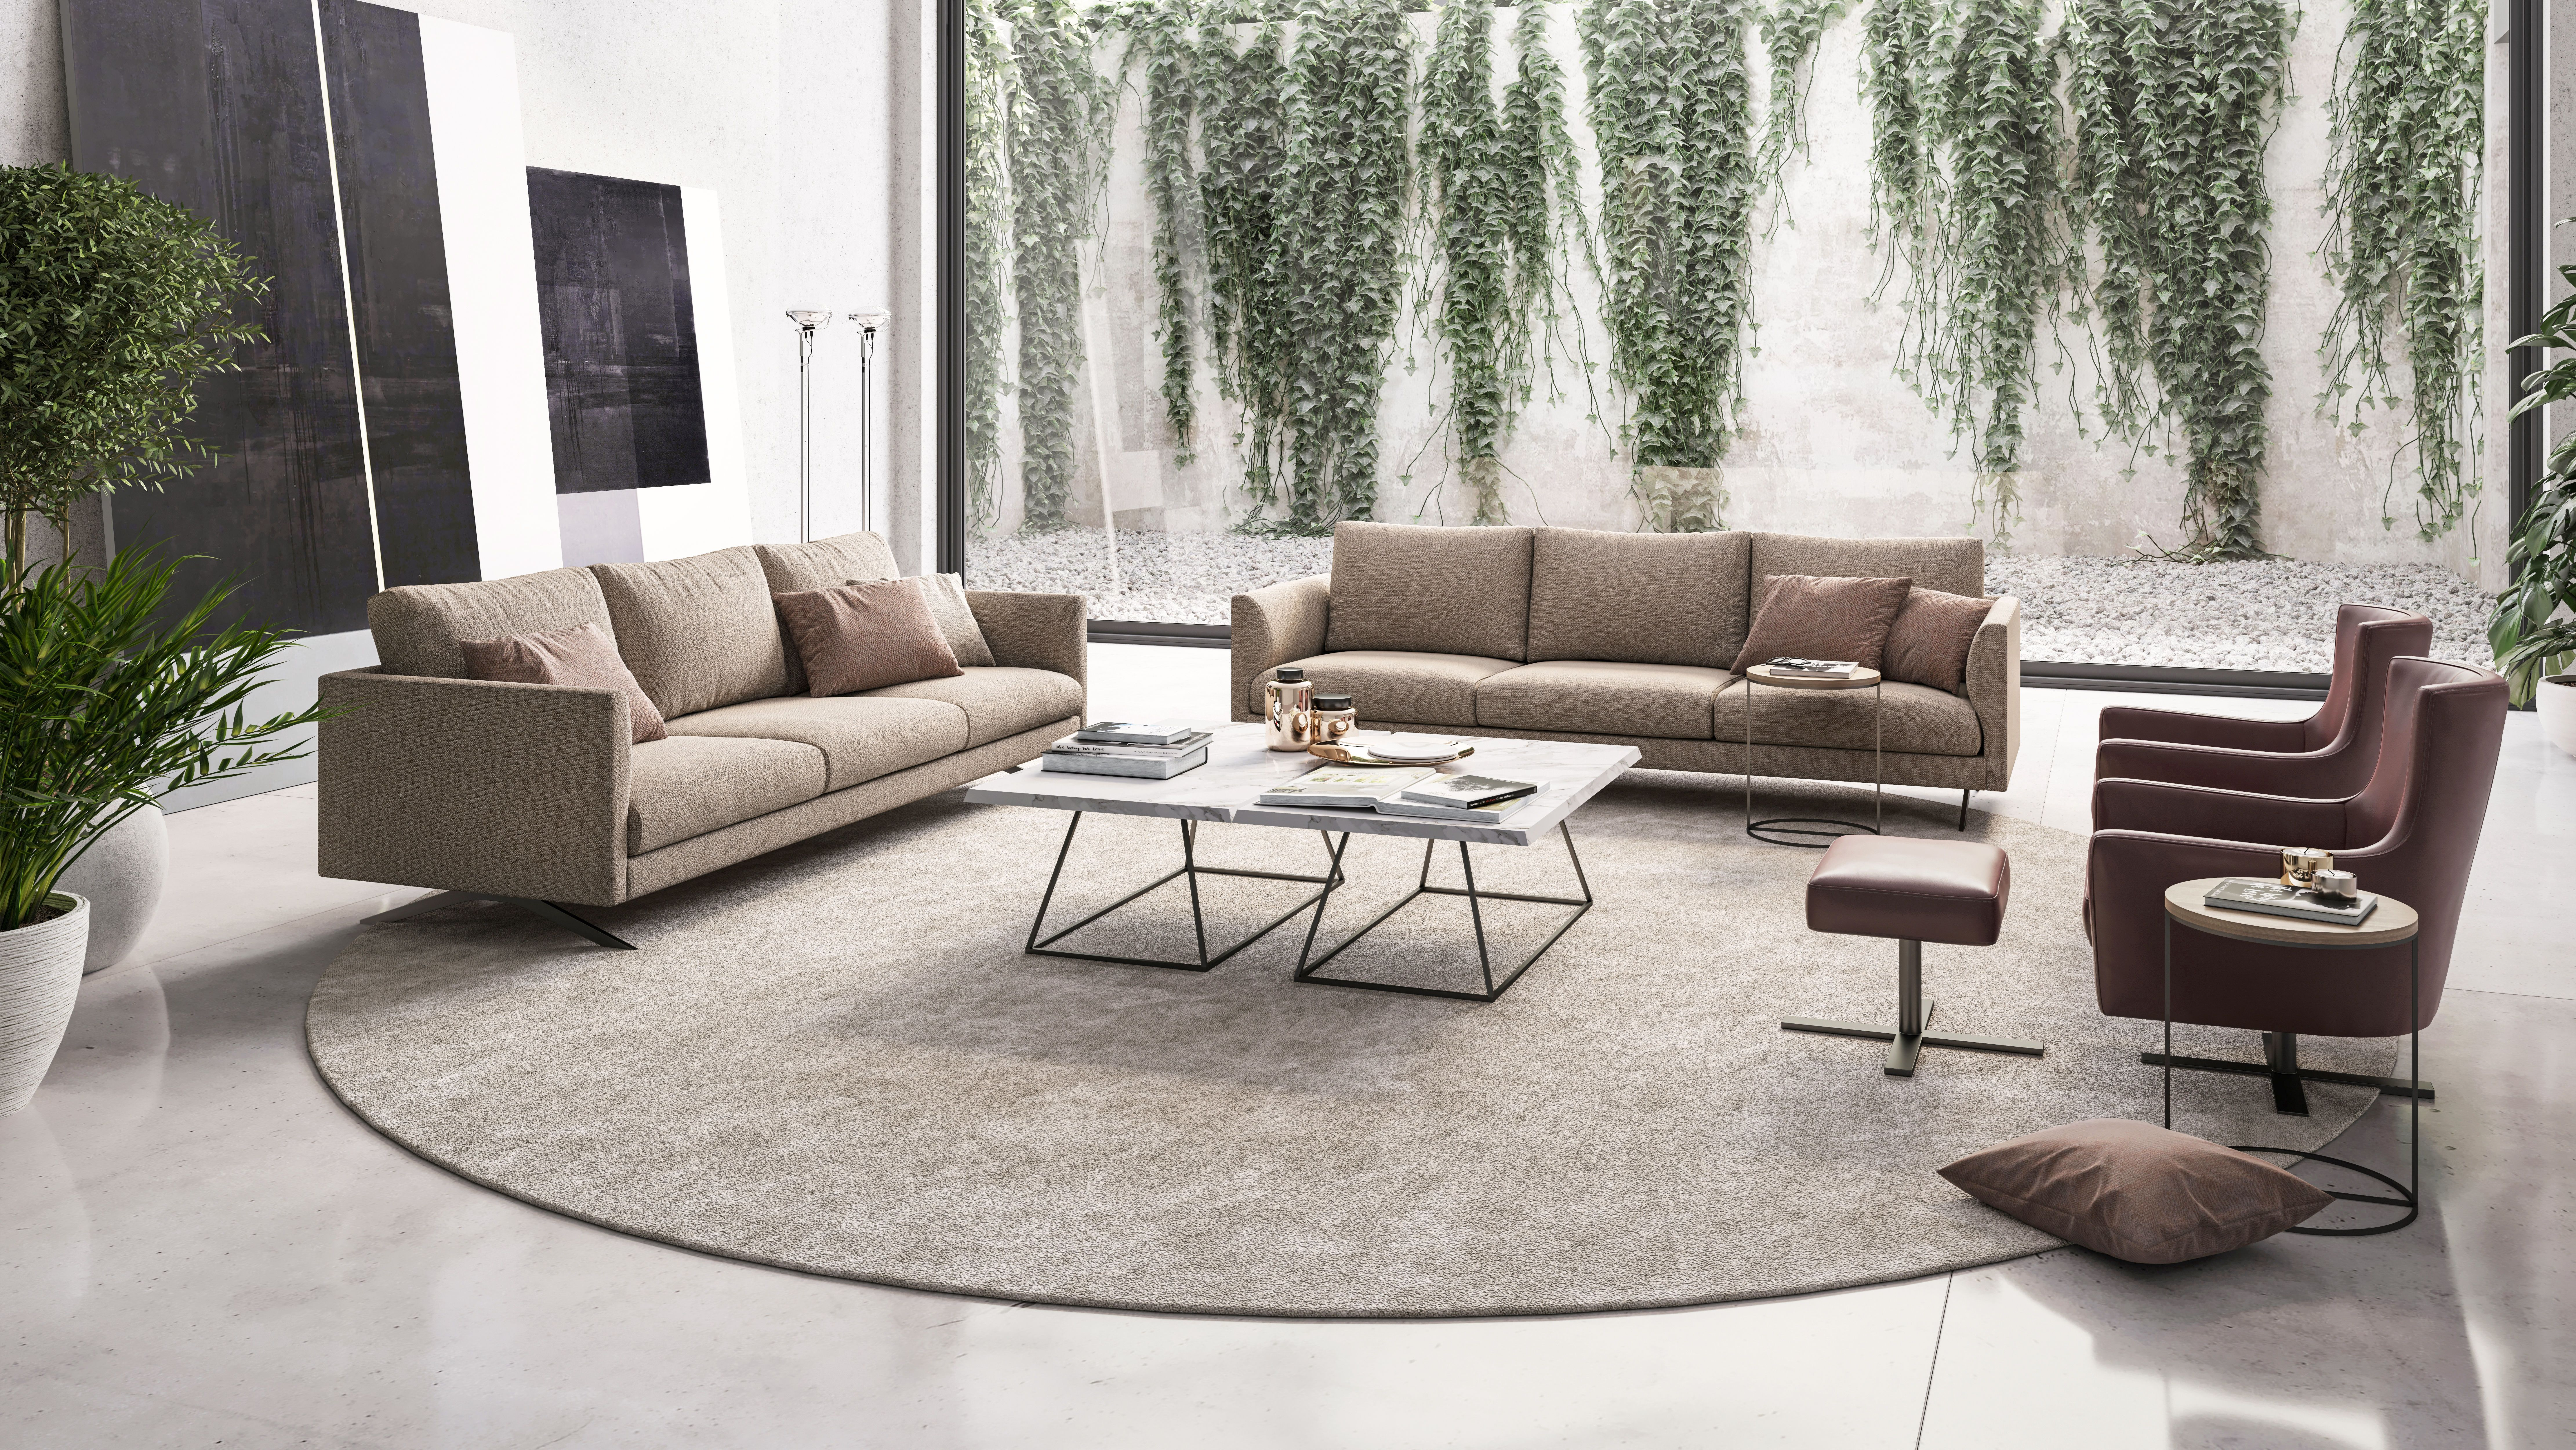 A Stylish Living Room Is One In Which Beautiful Furniture Plays The Main Role This Is How It I Stylish Living Room Marble Tables Living Room Elegant Furniture #stylish #living #room #furniture